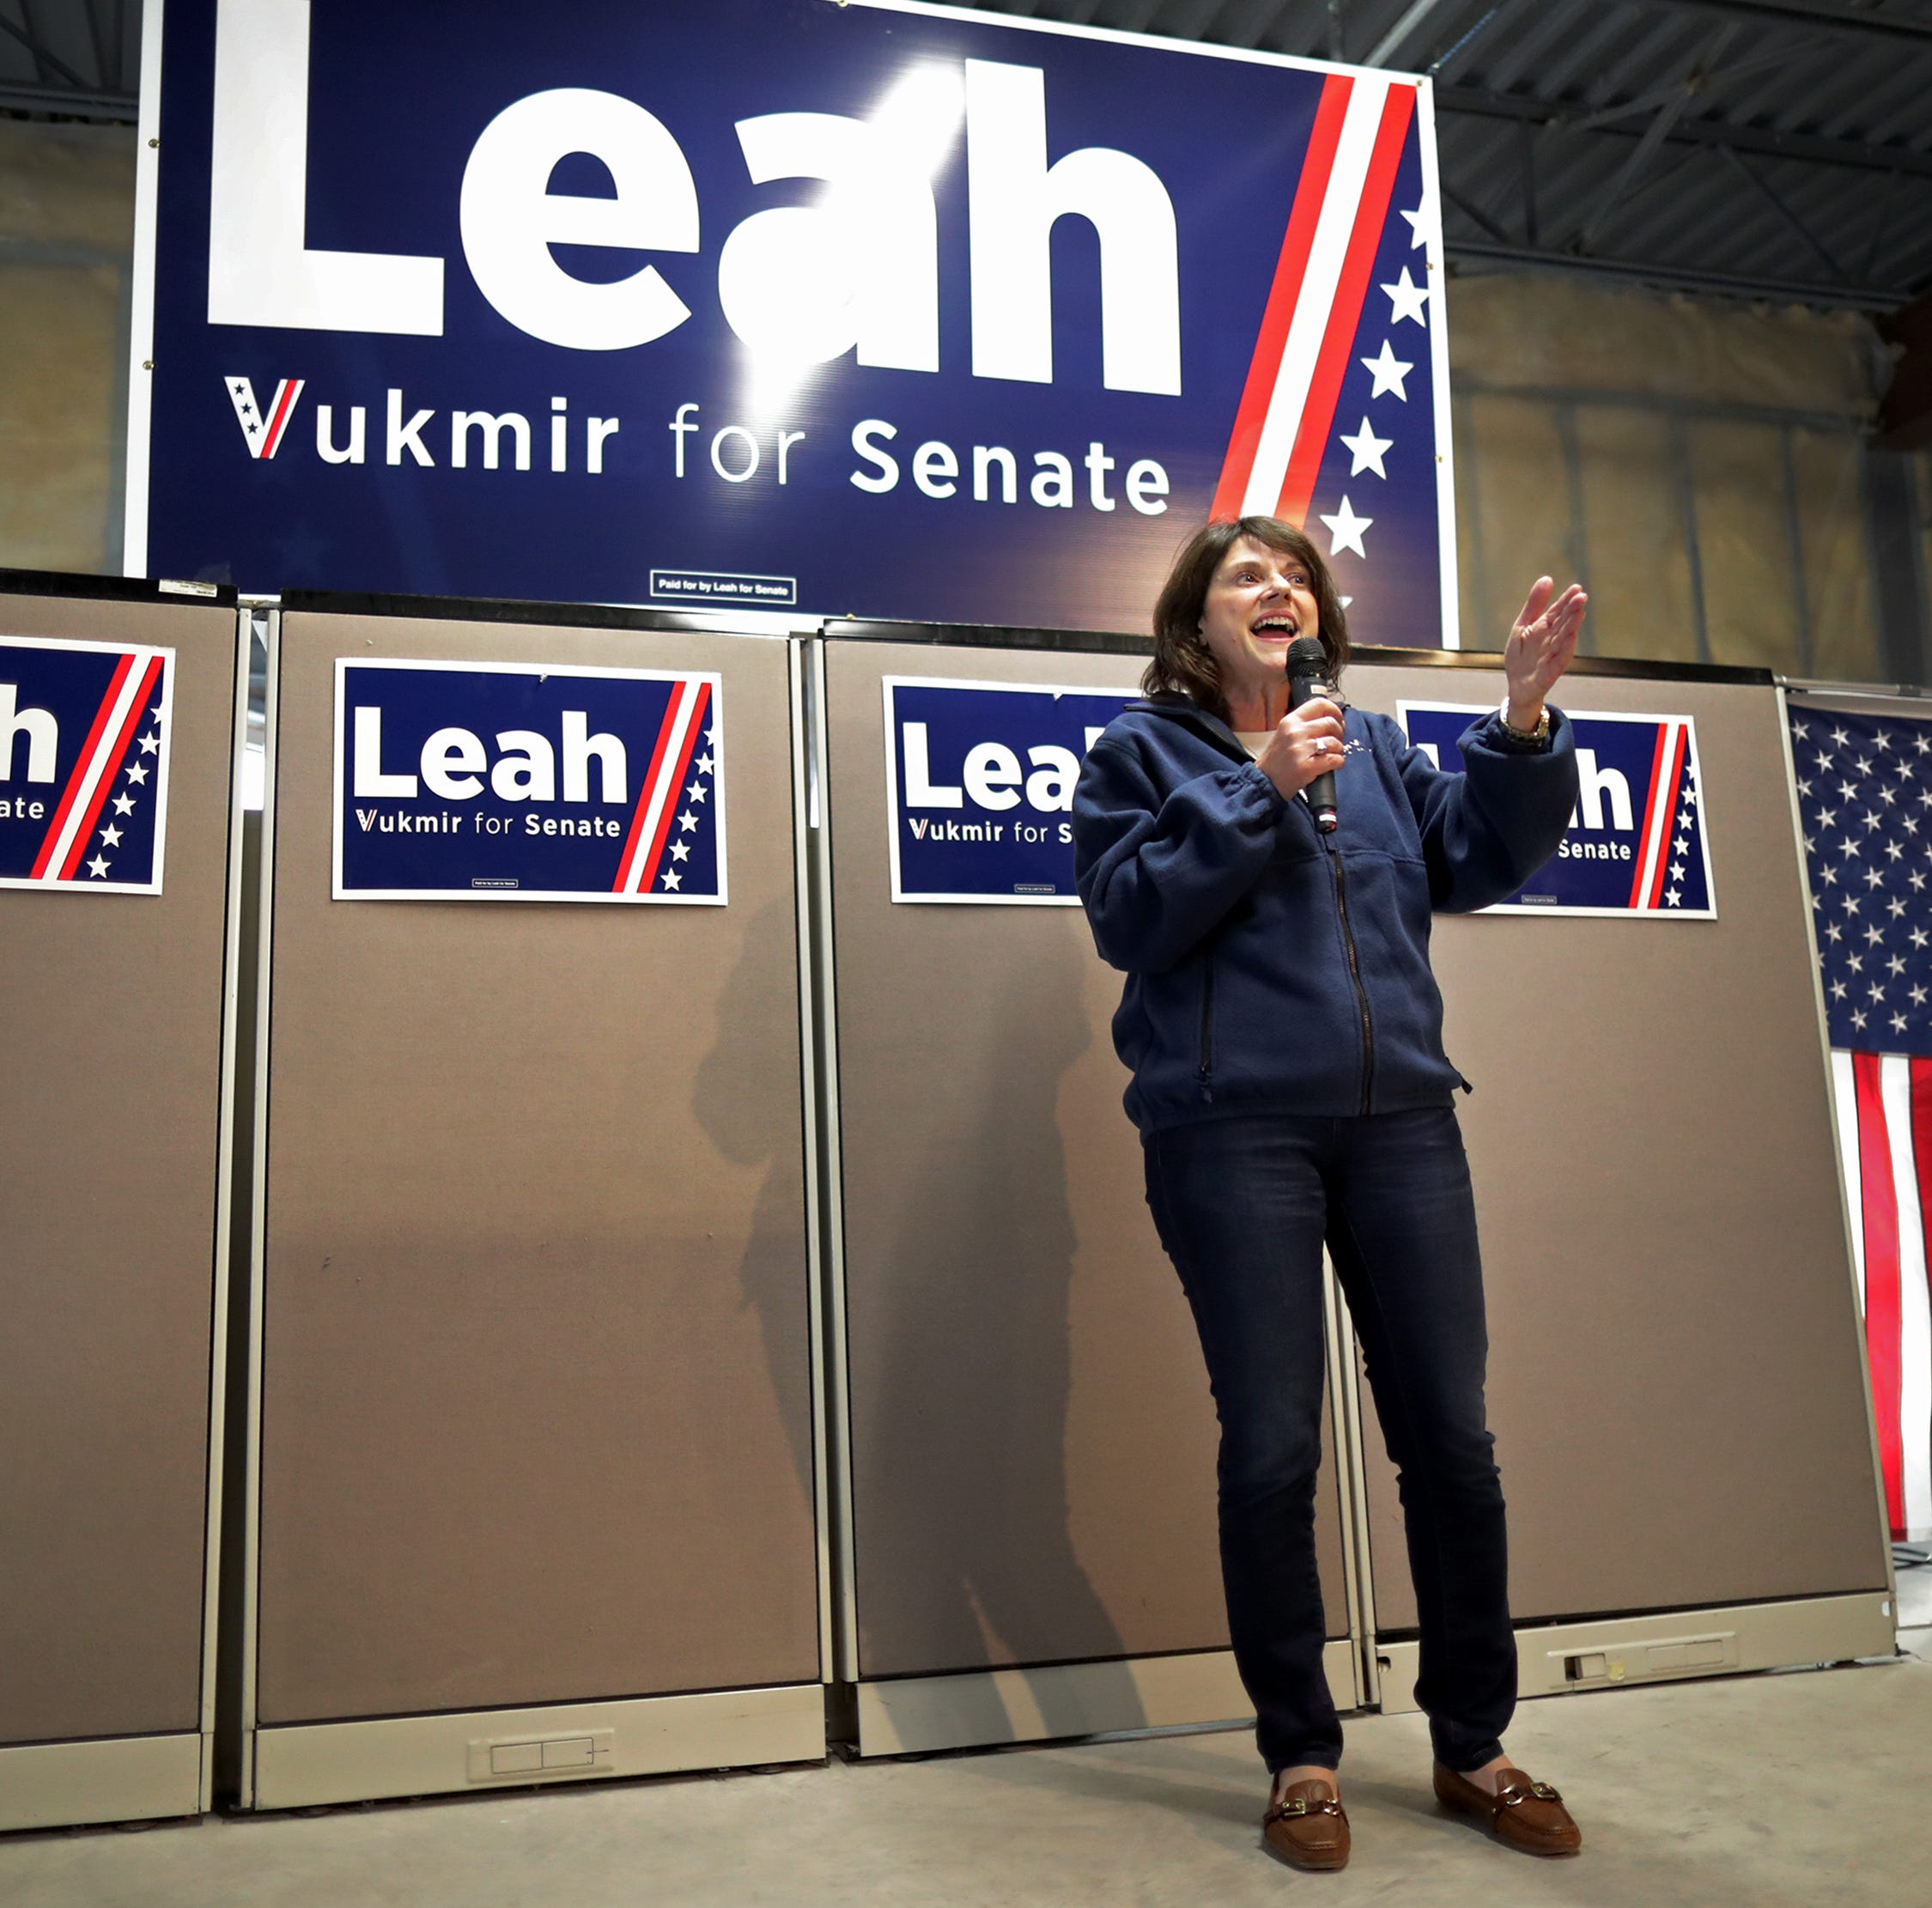 Leah Vukmir, Scott Walker campaign in Fox Cities ahead of Tuesday election